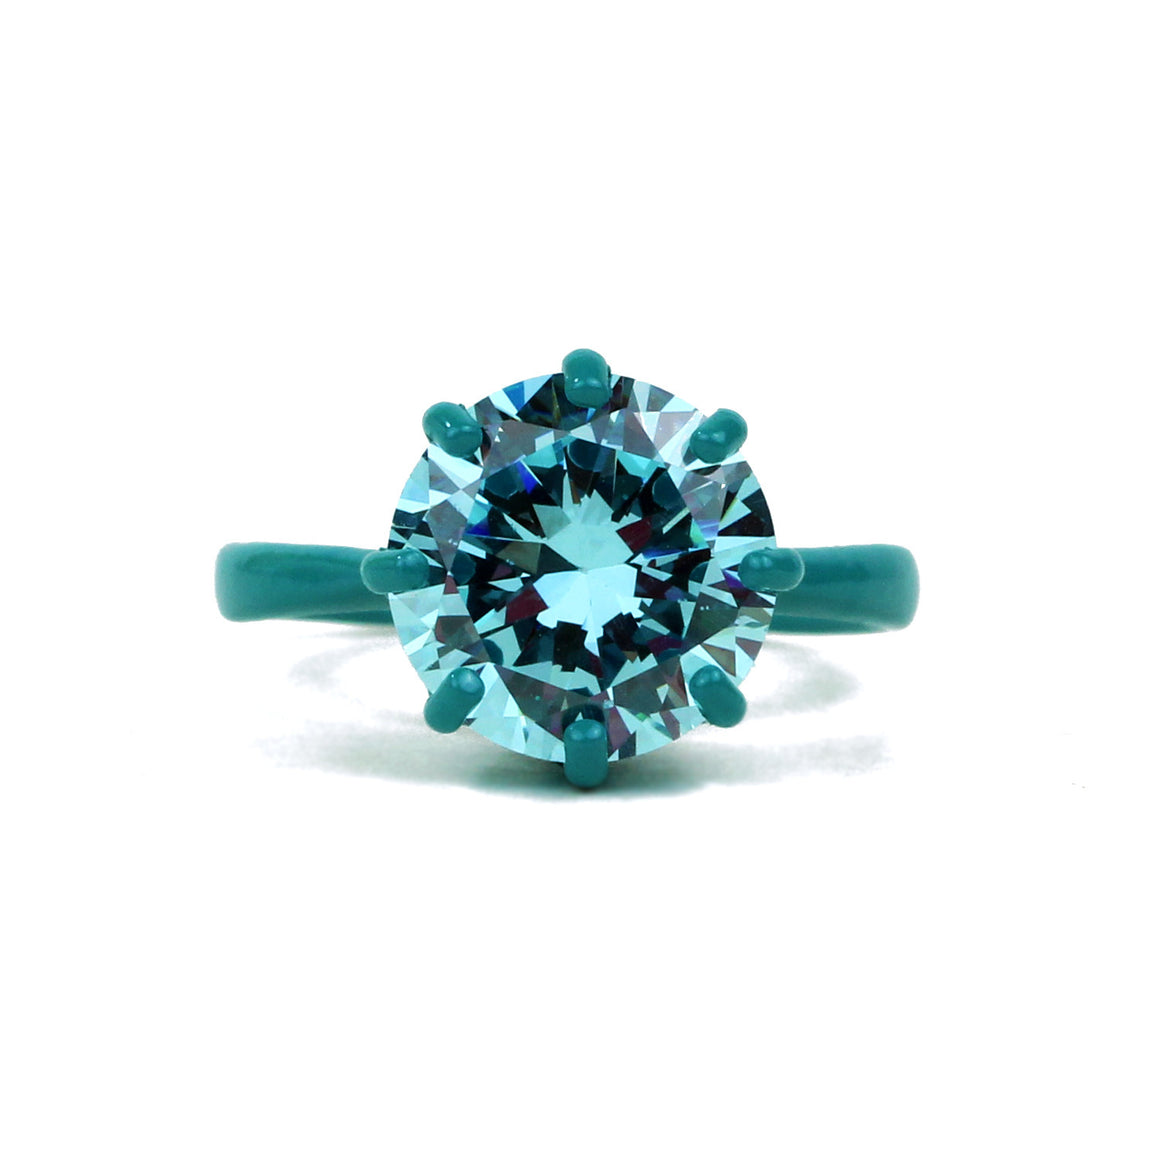 OMG Bling Ring in Teal - 12mm Round Stone, LARGER Finger Sizes